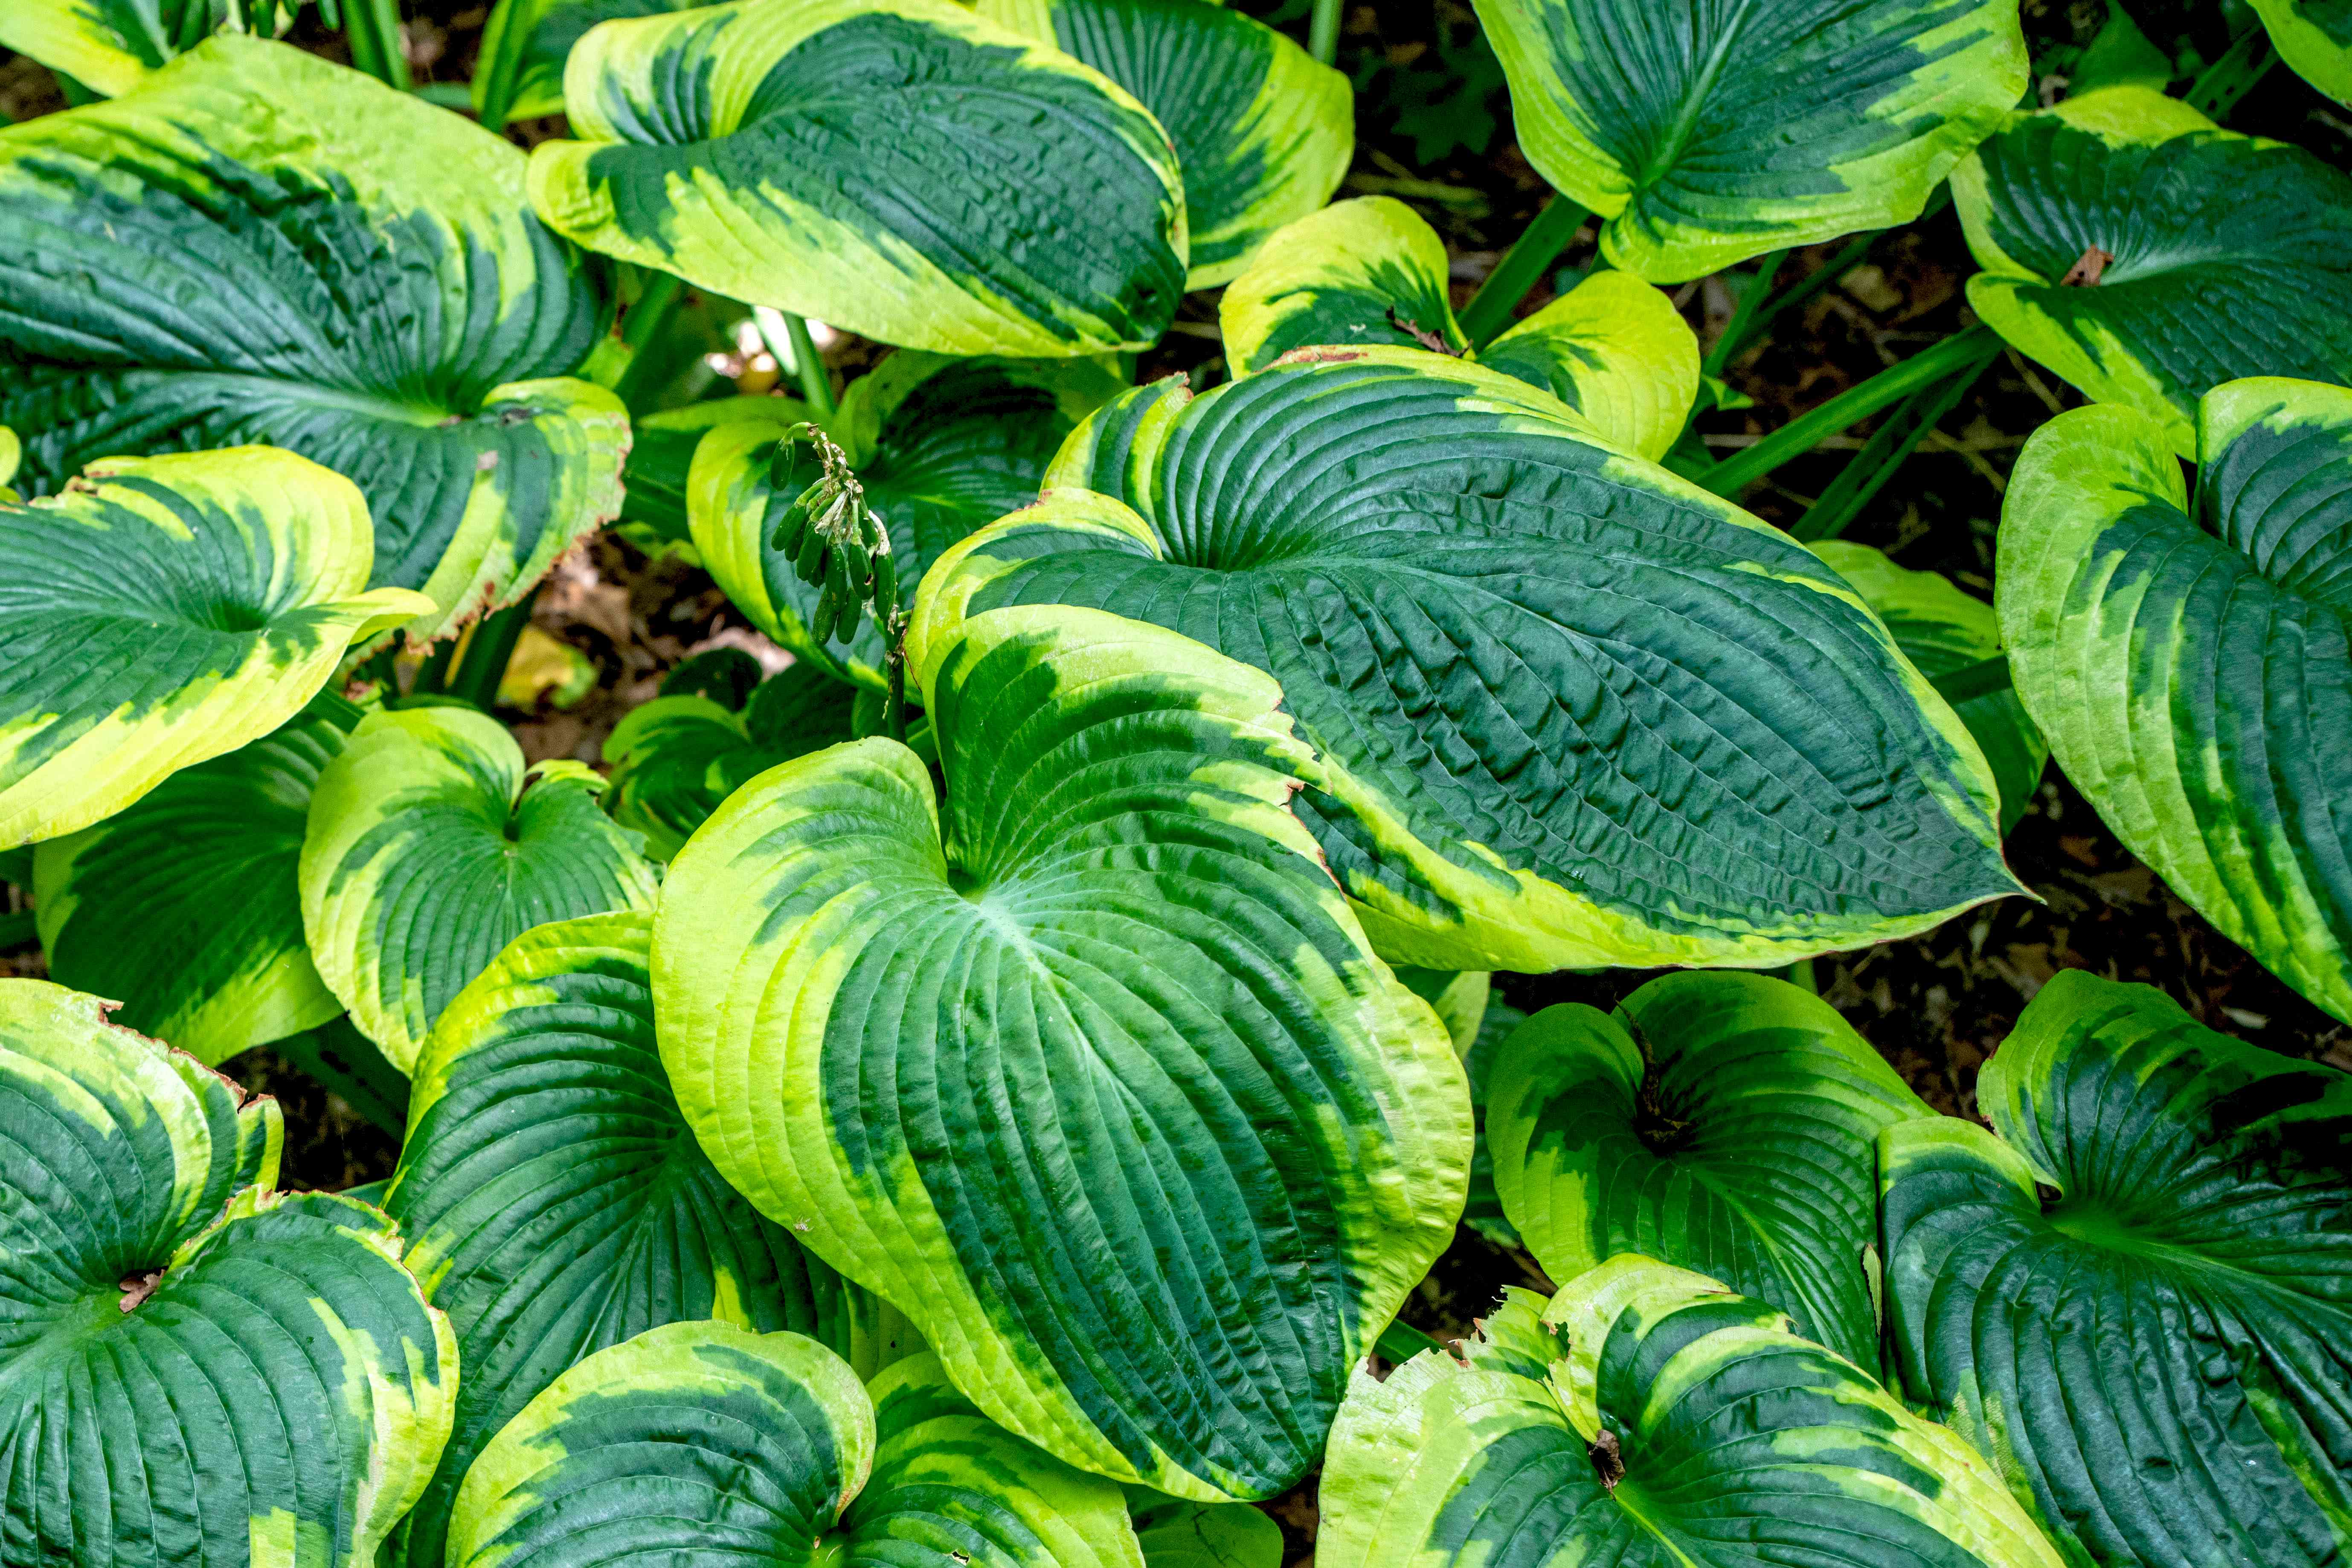 Frances Williams hosta plant with large oval leaves with blue-green and yellow-green colors closeup